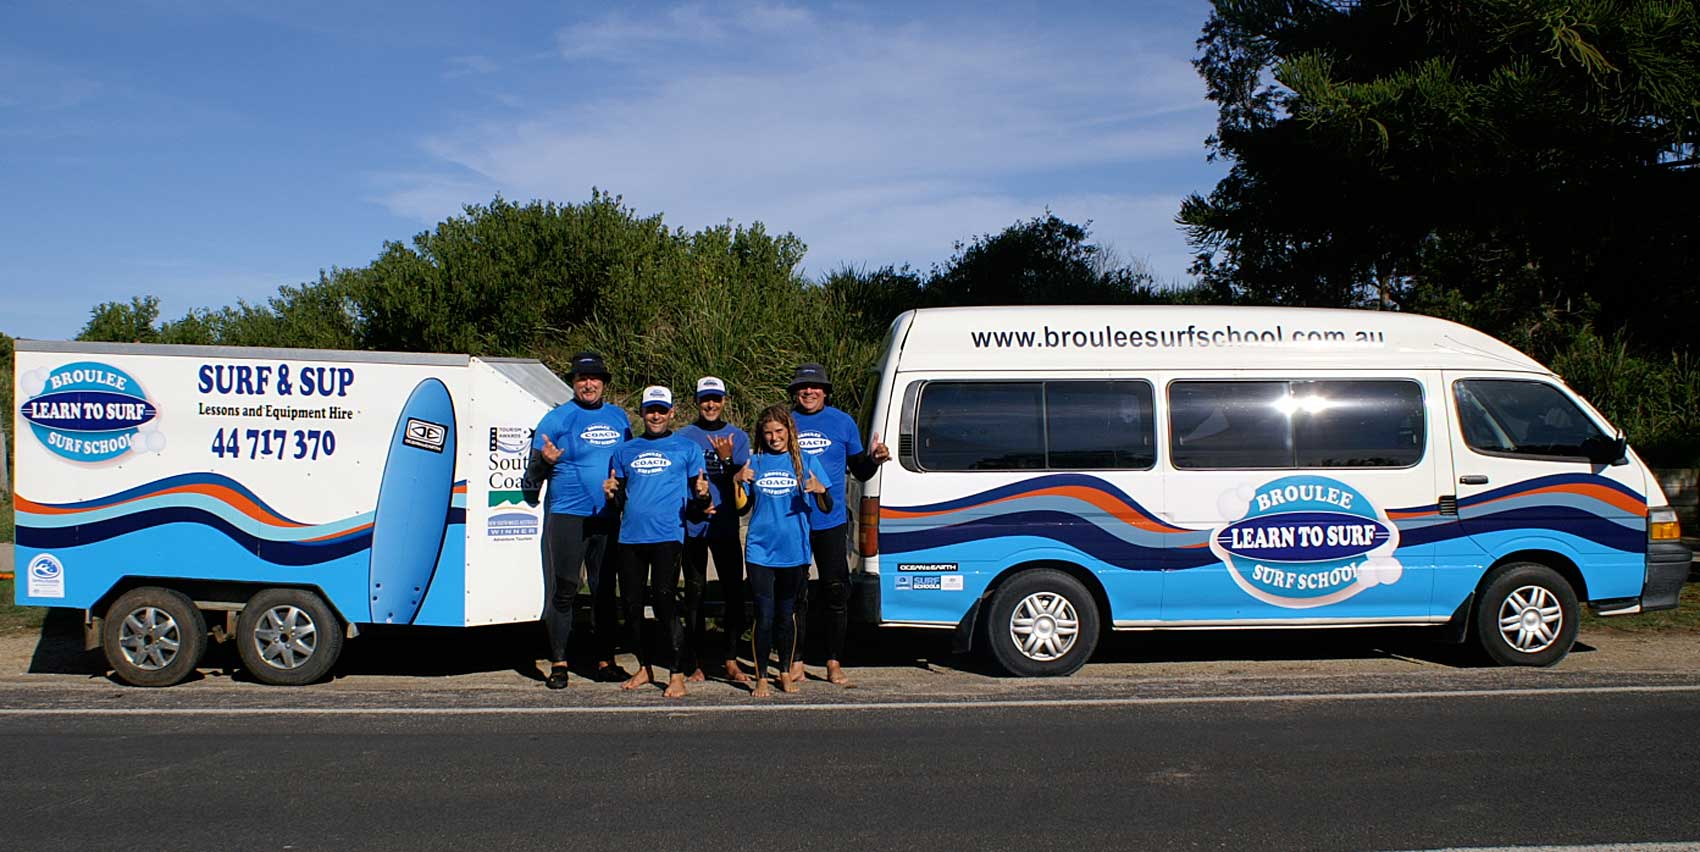 Broulee Surf School Staff and Van